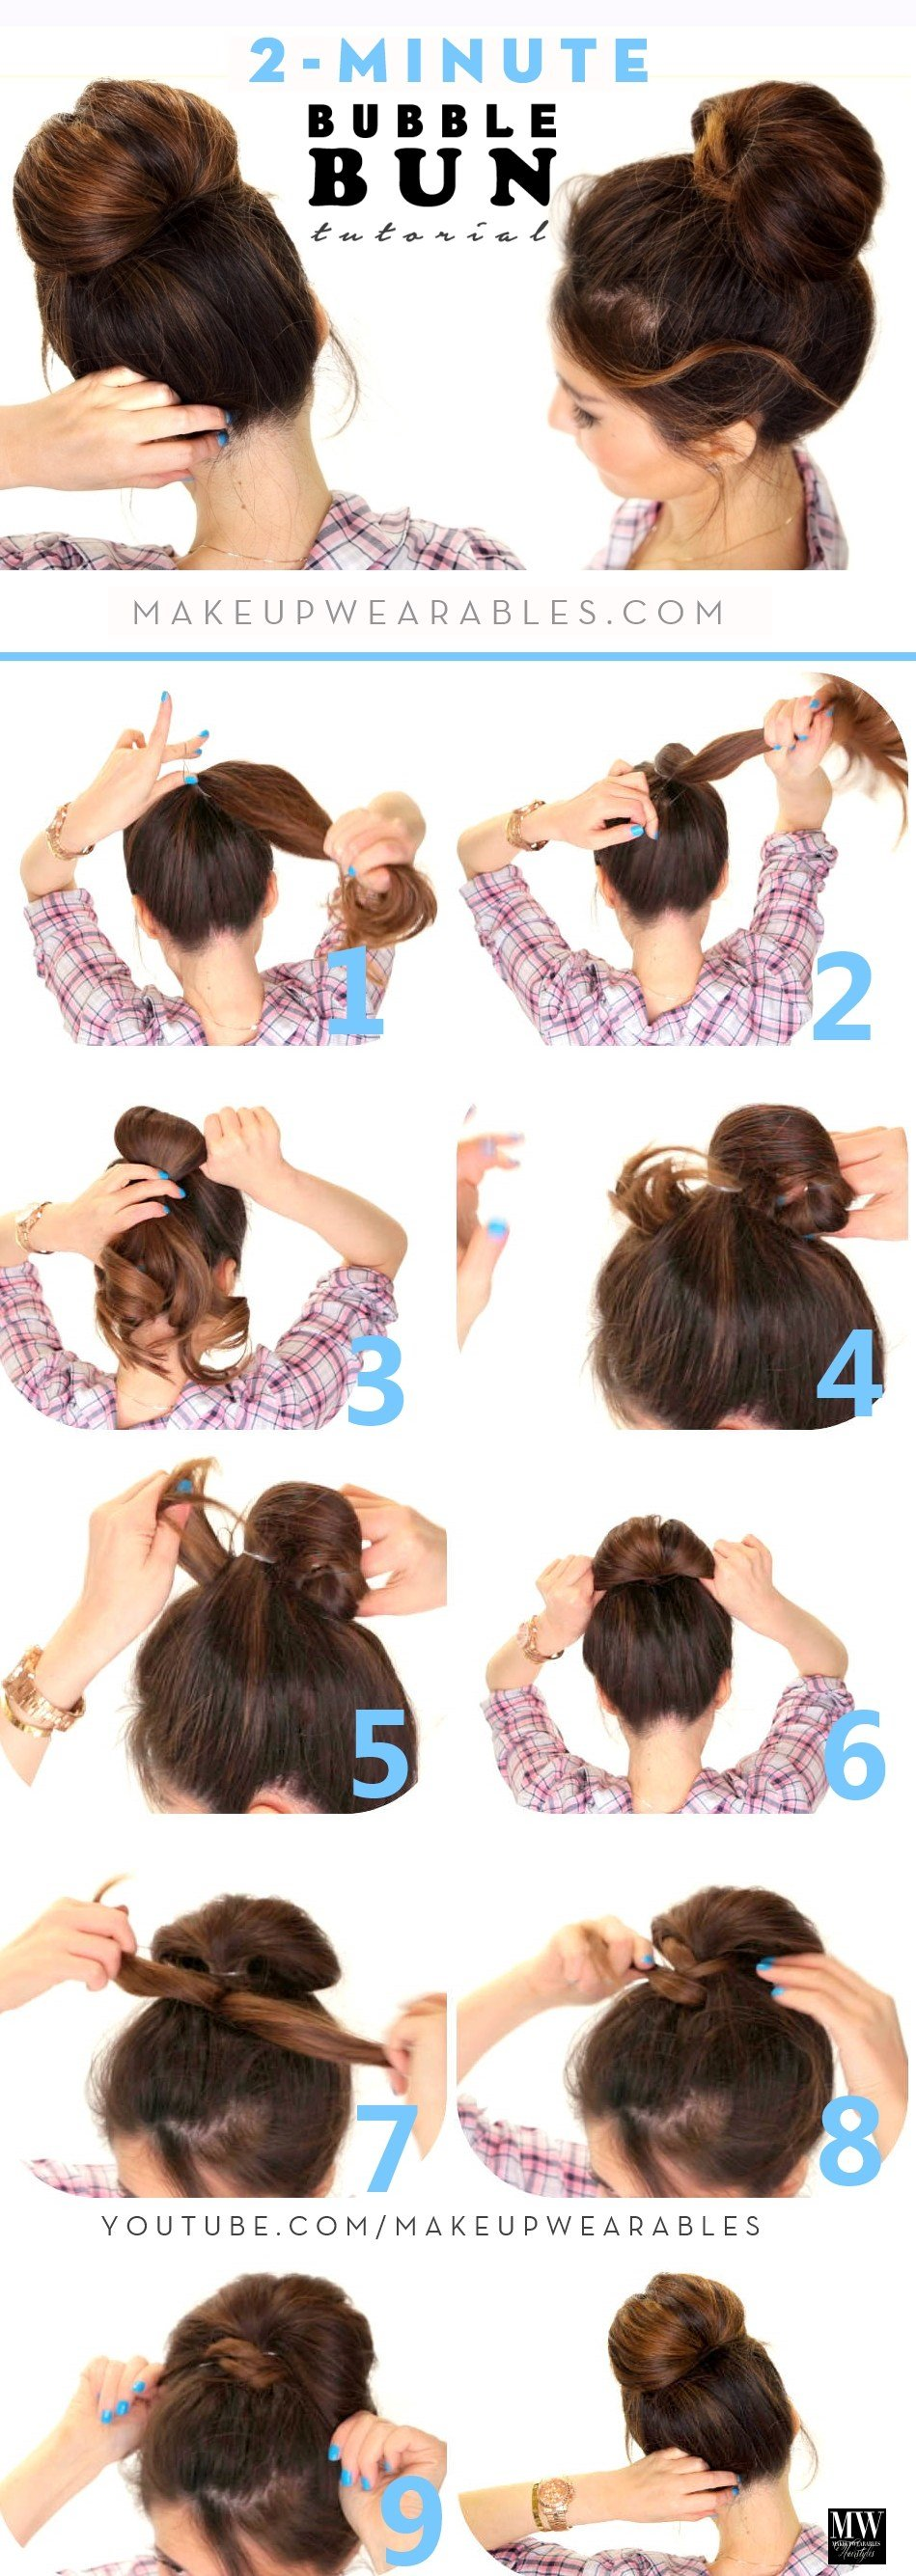 New How To Quick Easy Fan Bun Hairstyle For Medium Long Hair Ideas With Pictures